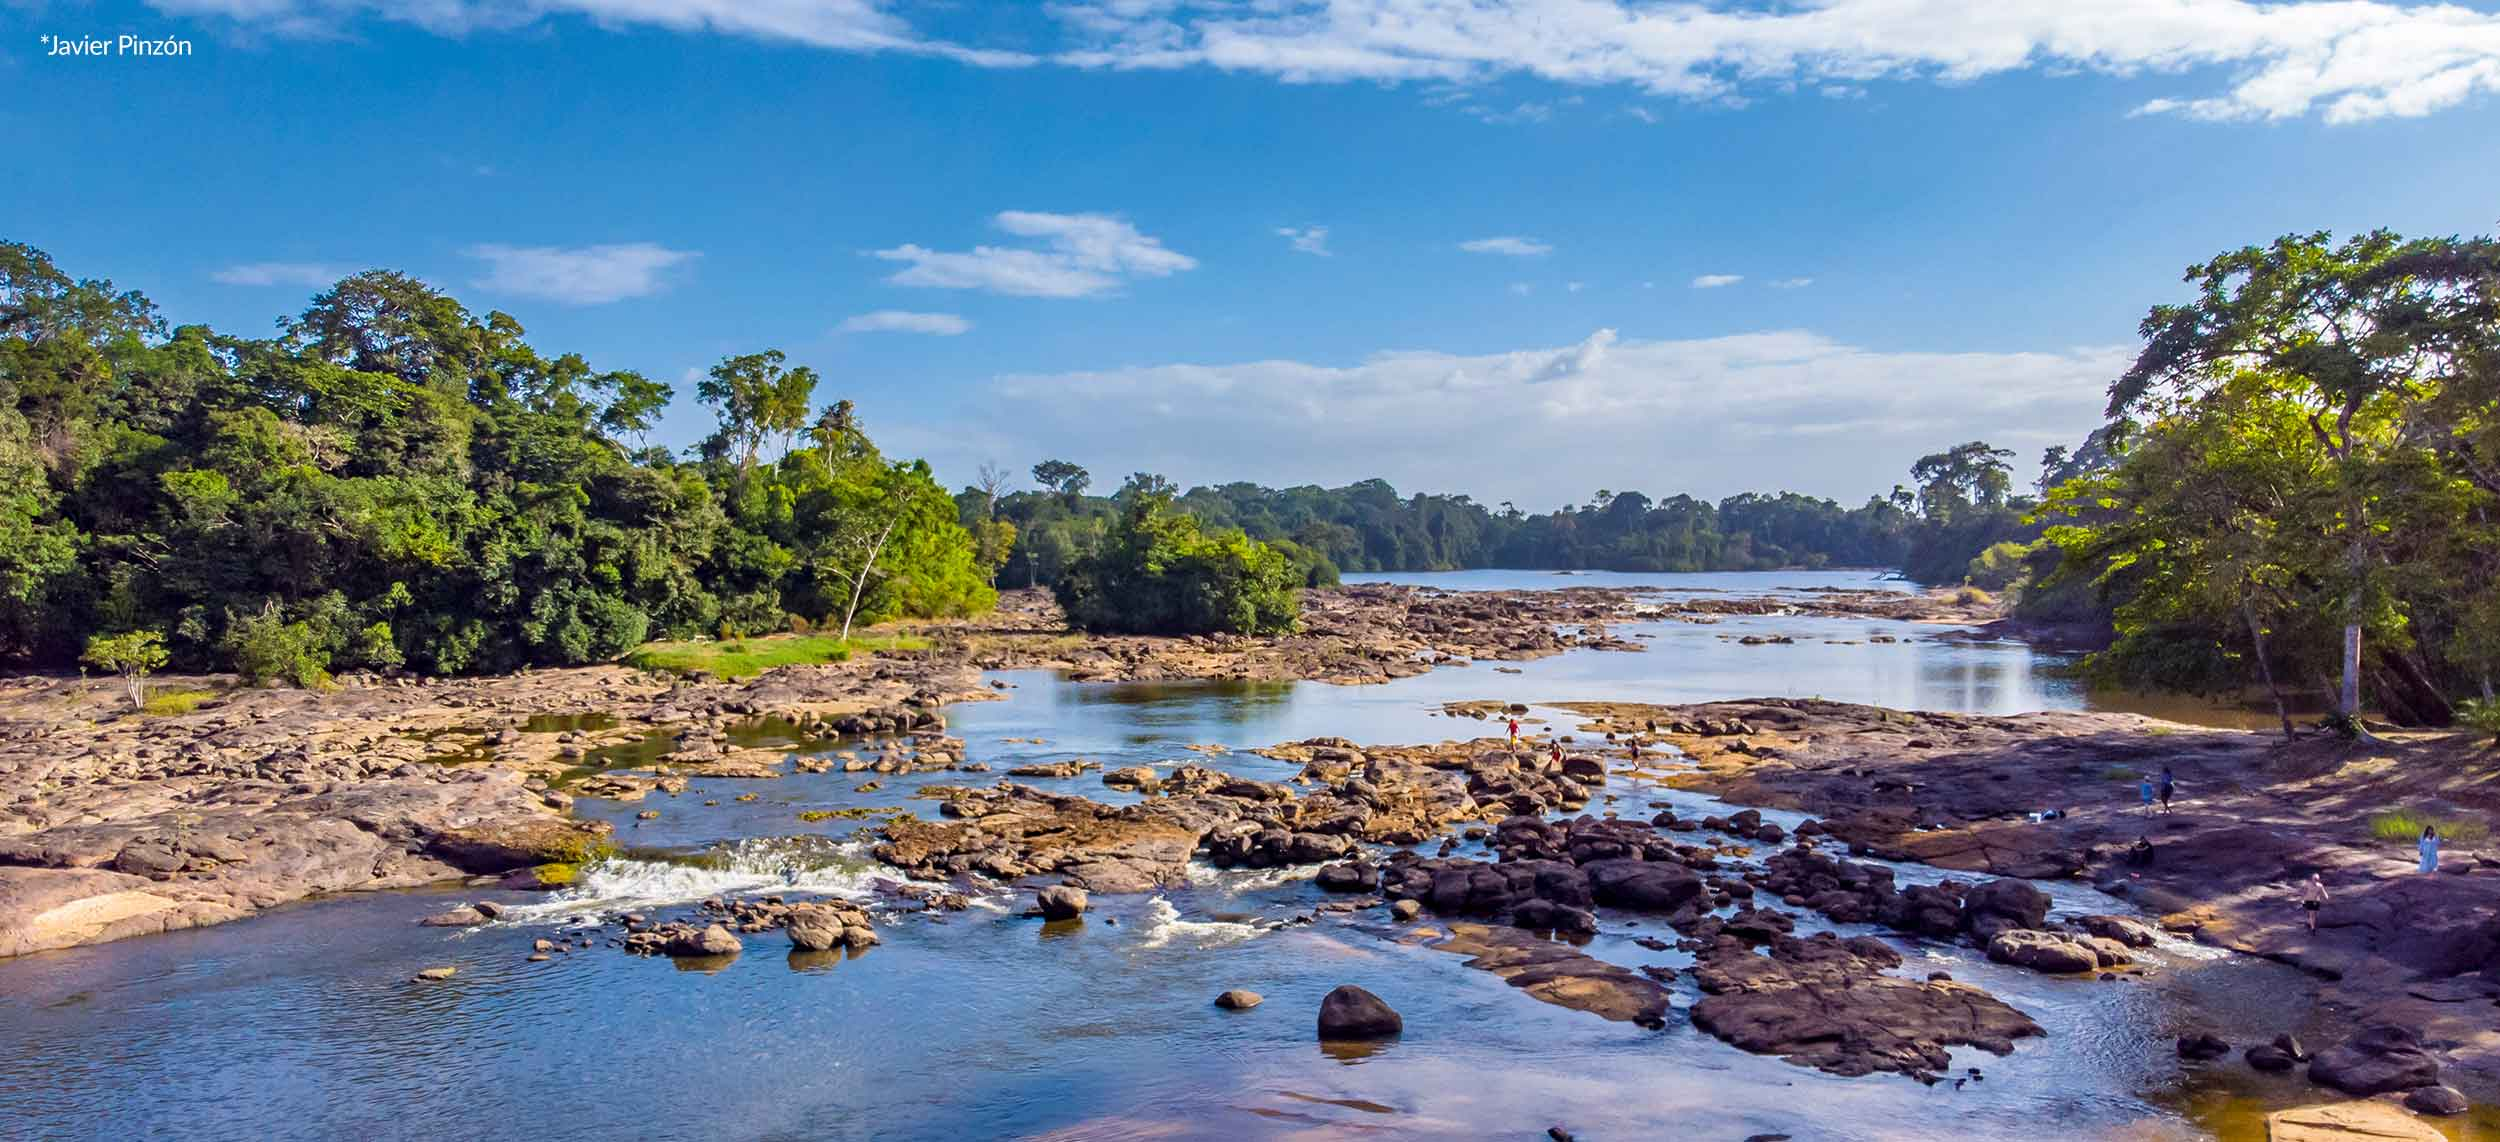 Discover Suriname with Copa Airlines